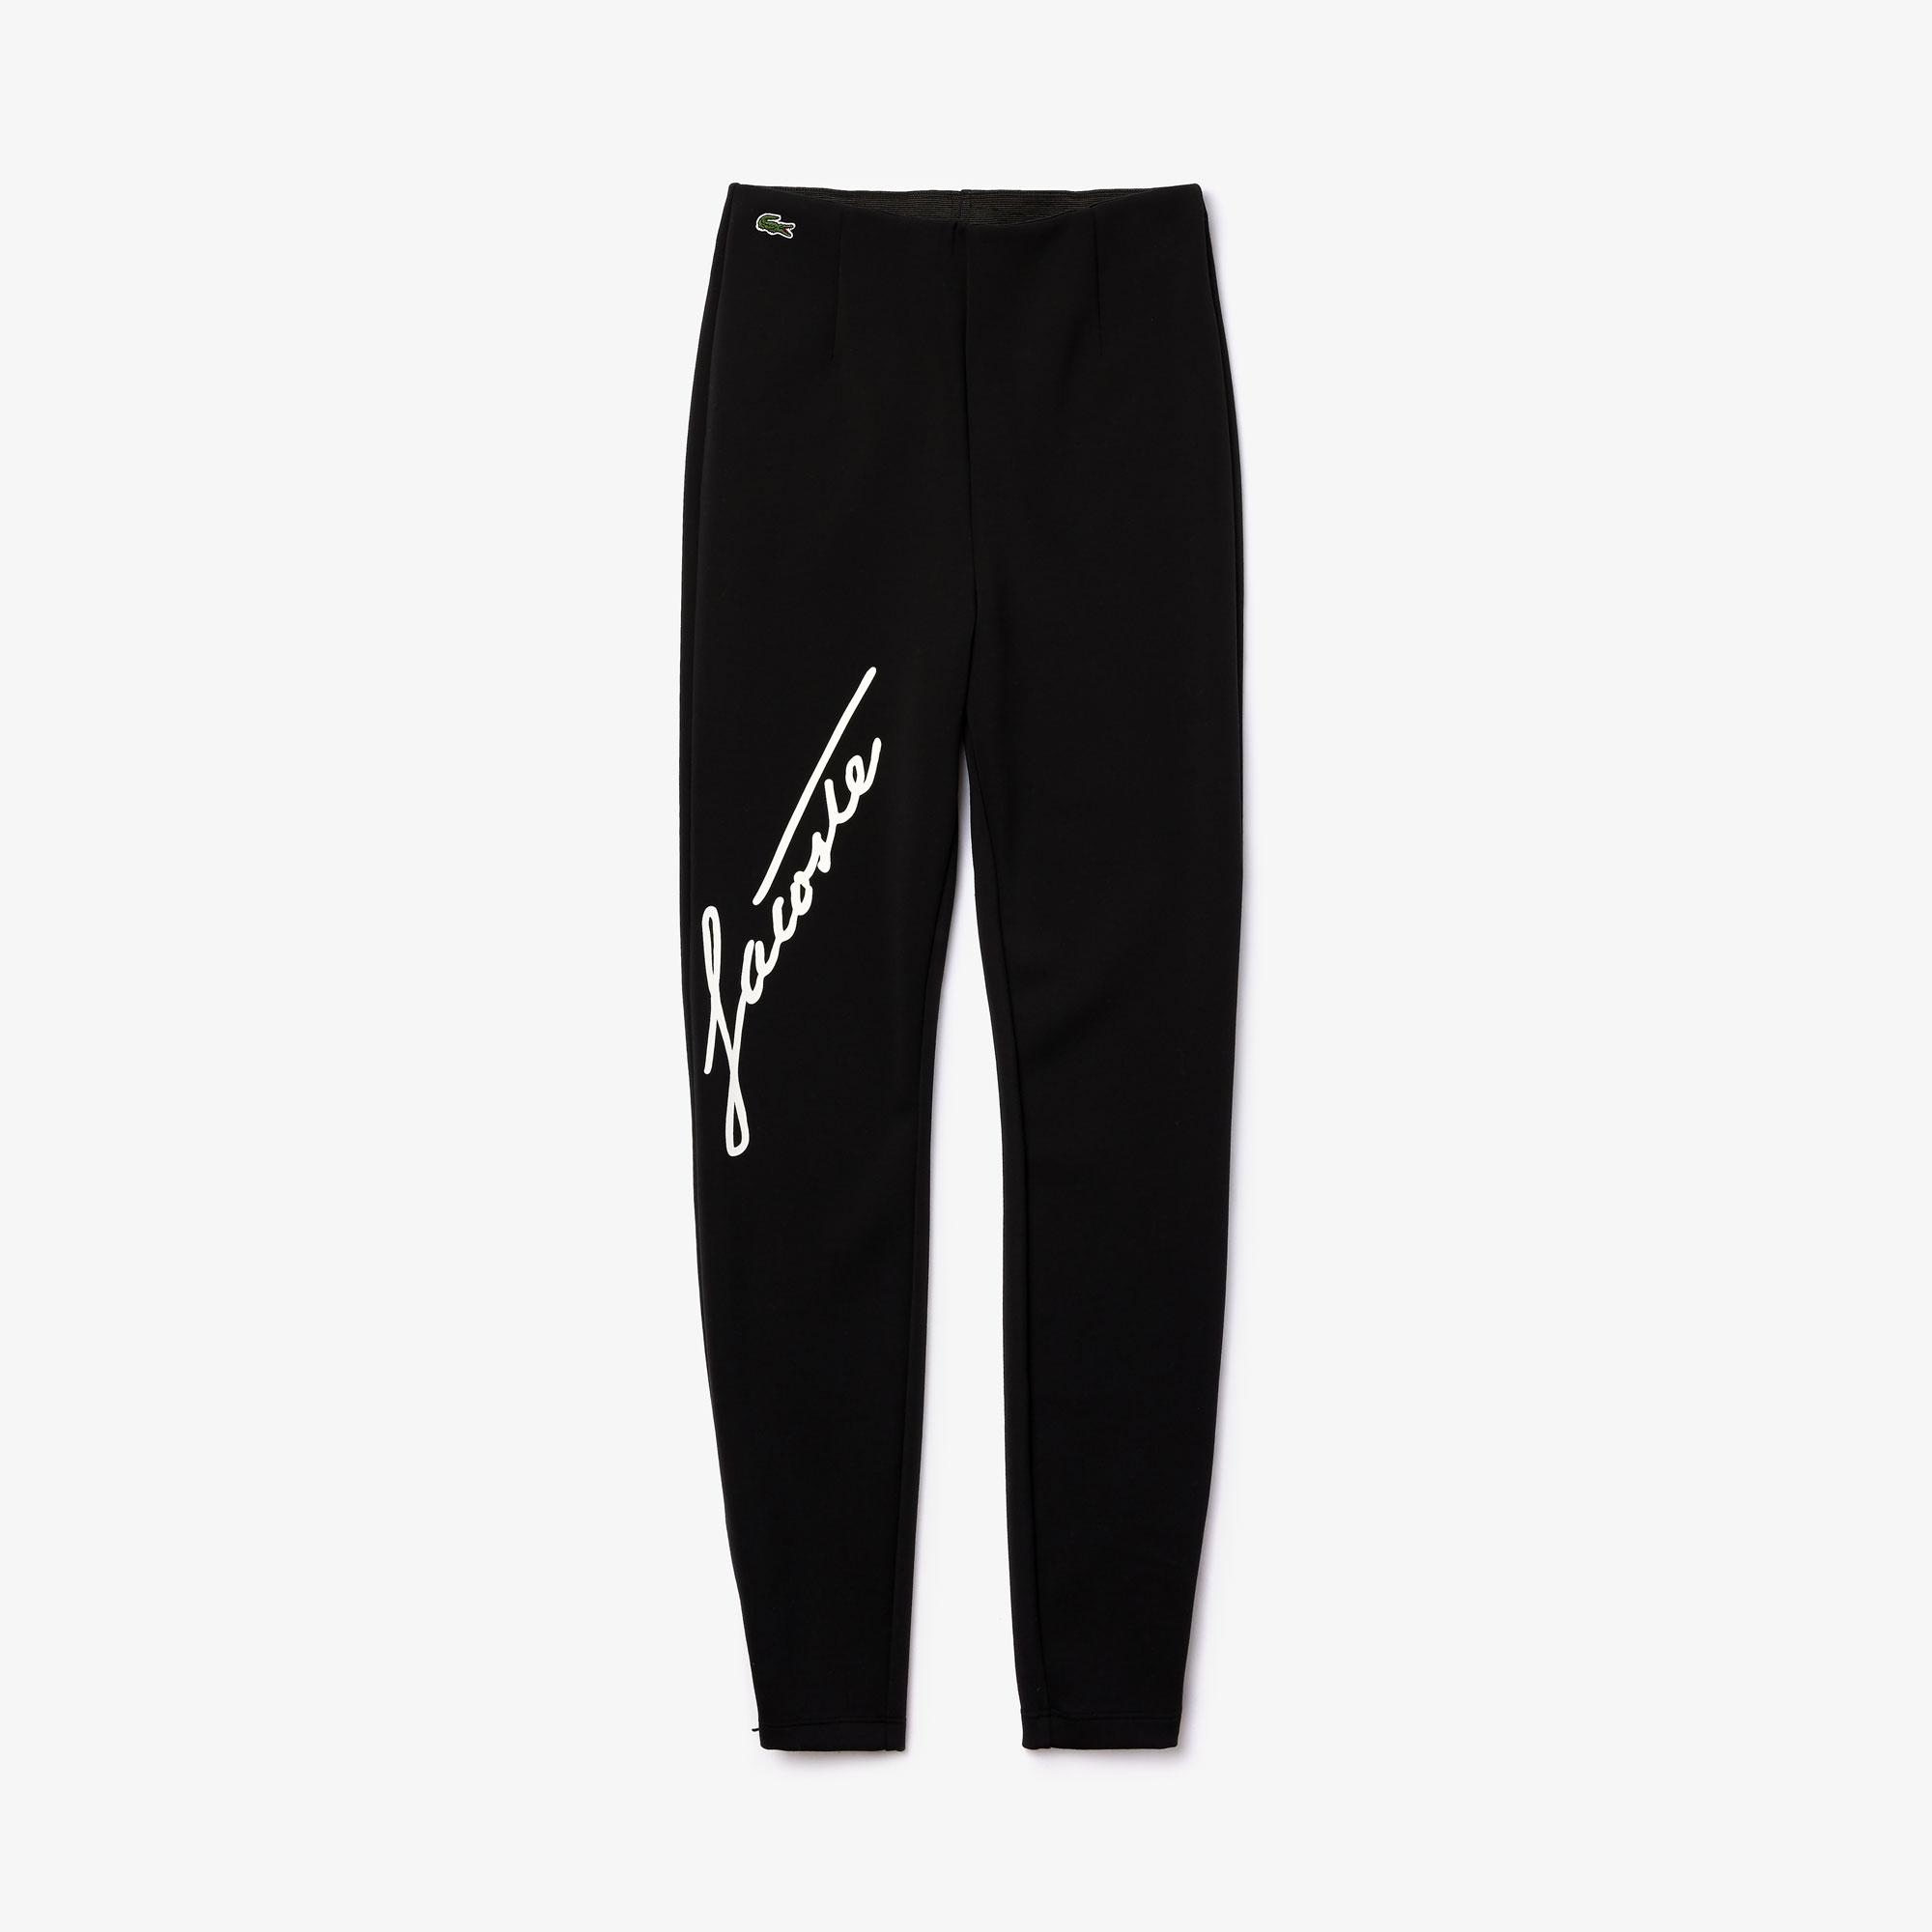 Lacoste Women's LIVE Contrast Signature High-Waisted Leggings